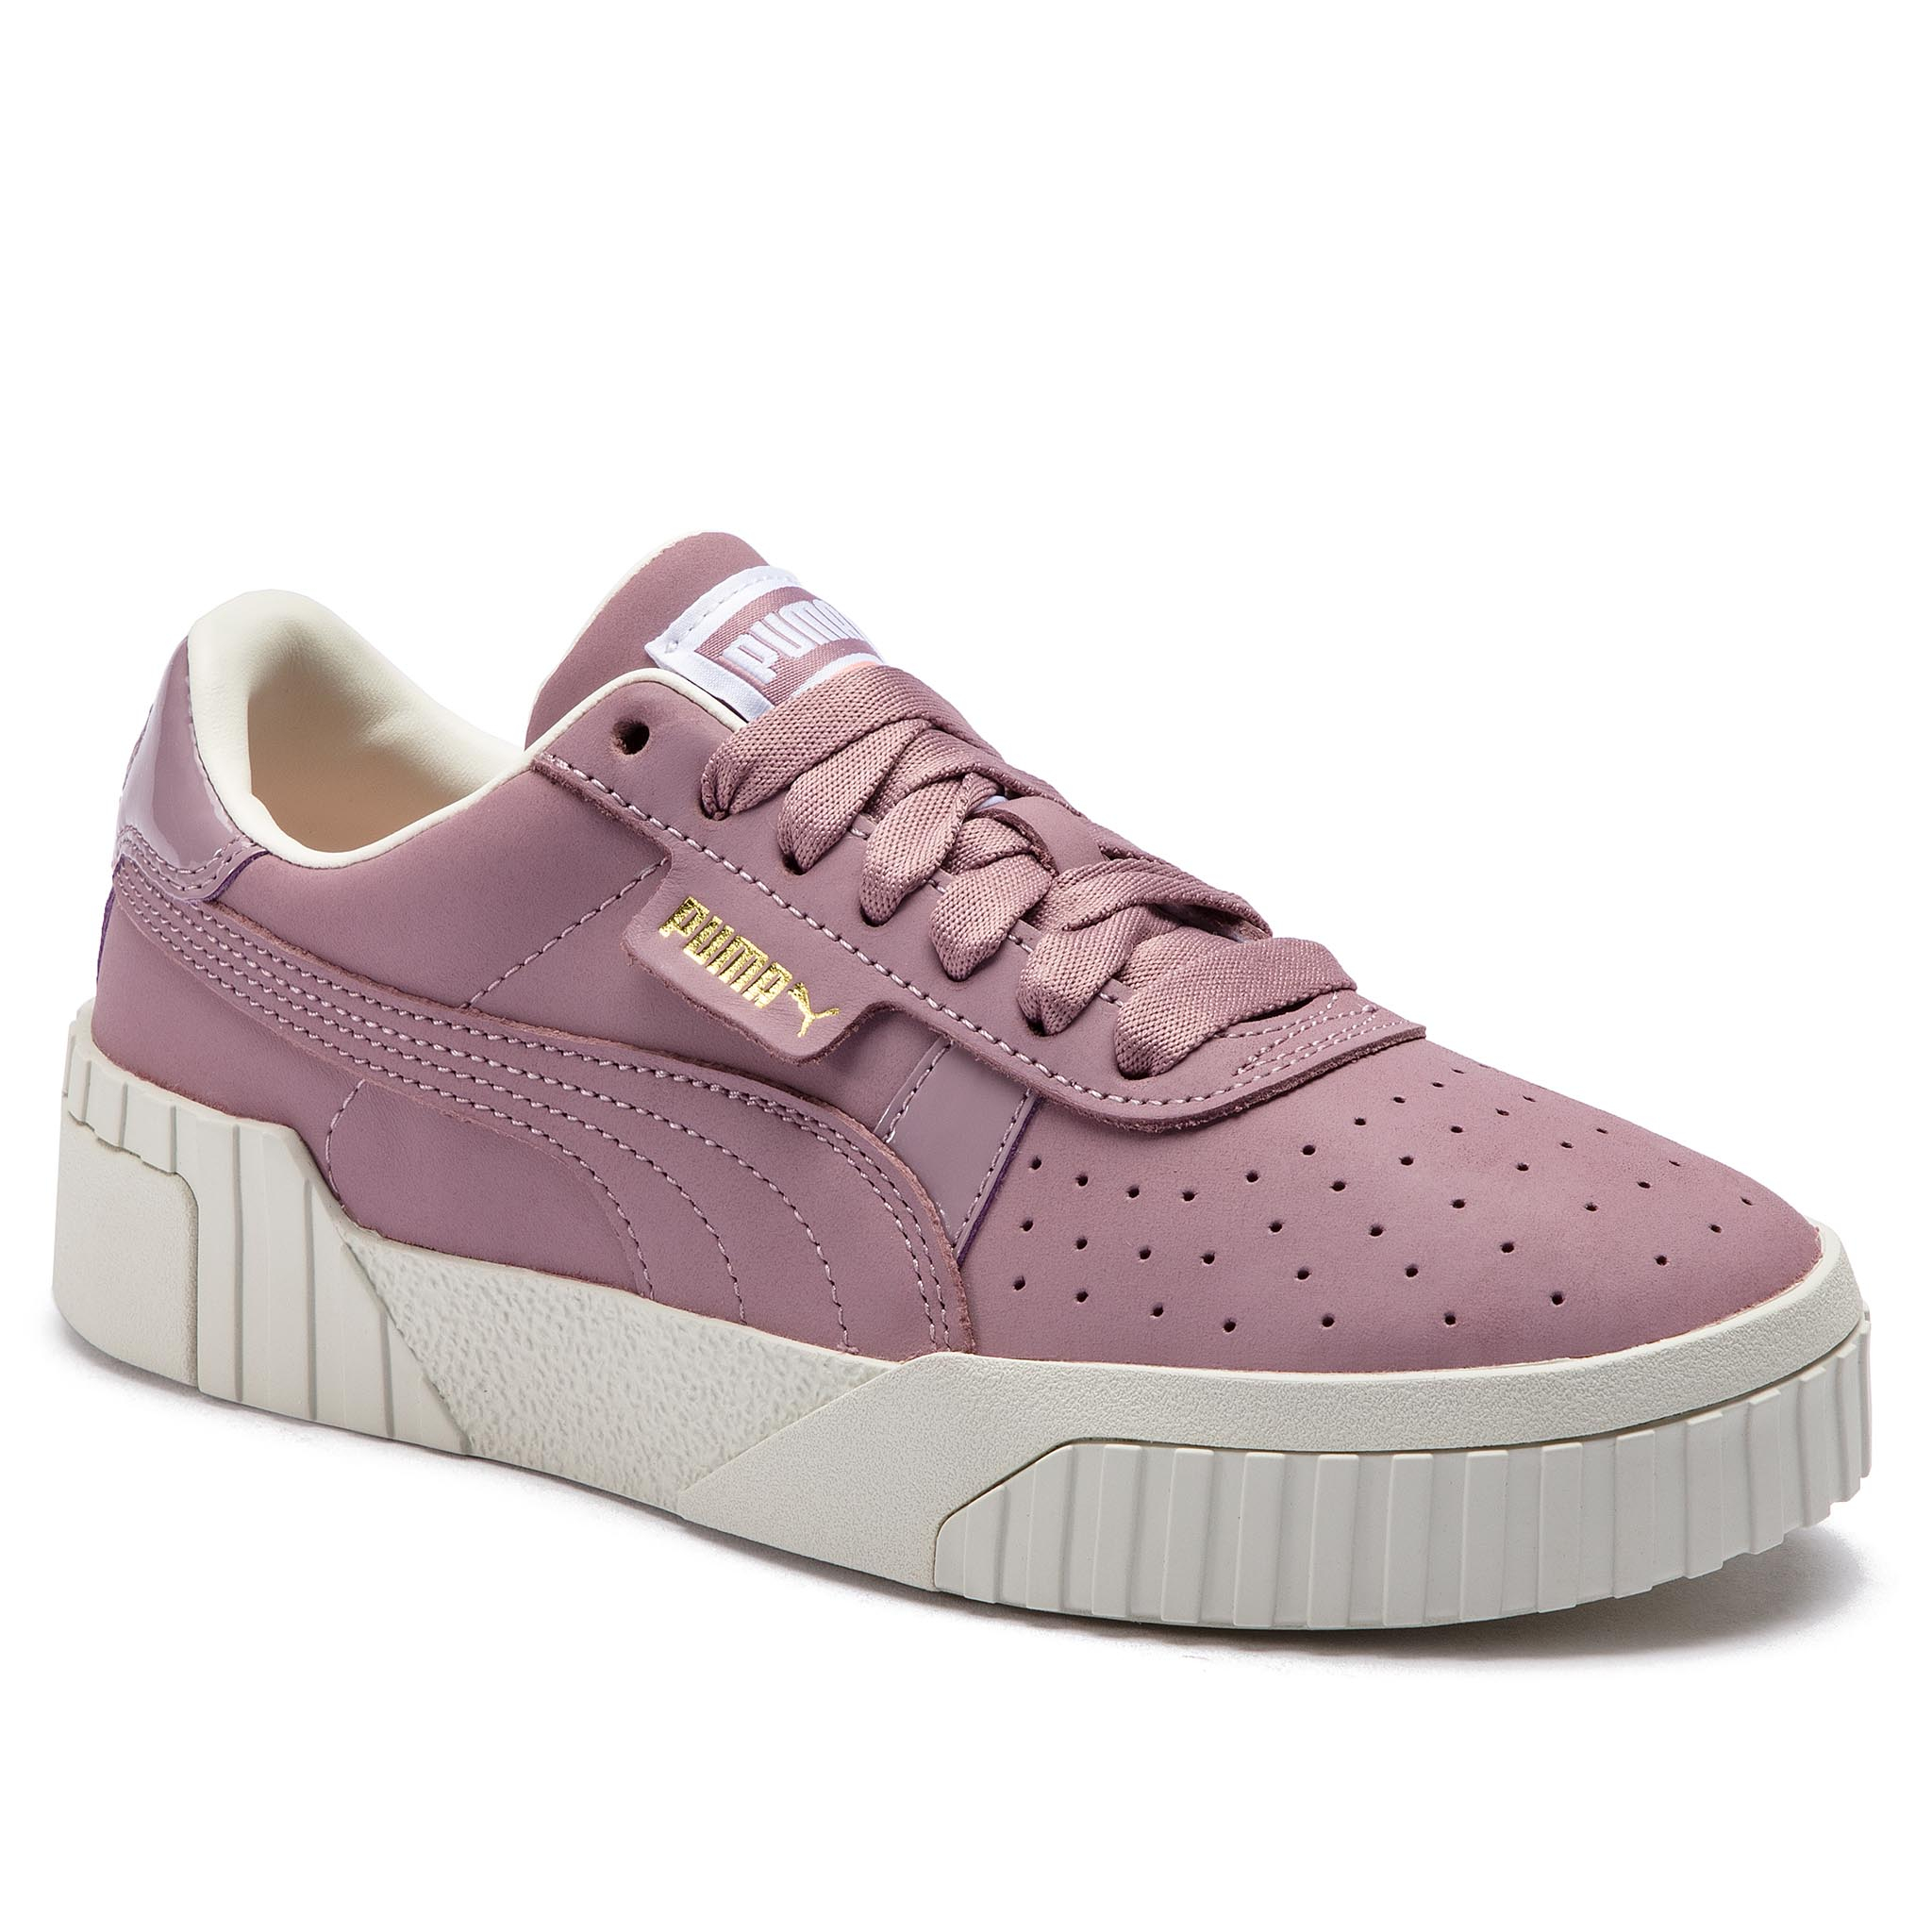 Sneakersy PUMA – Cali Nubuck Wn's 369161 02 Elderberry